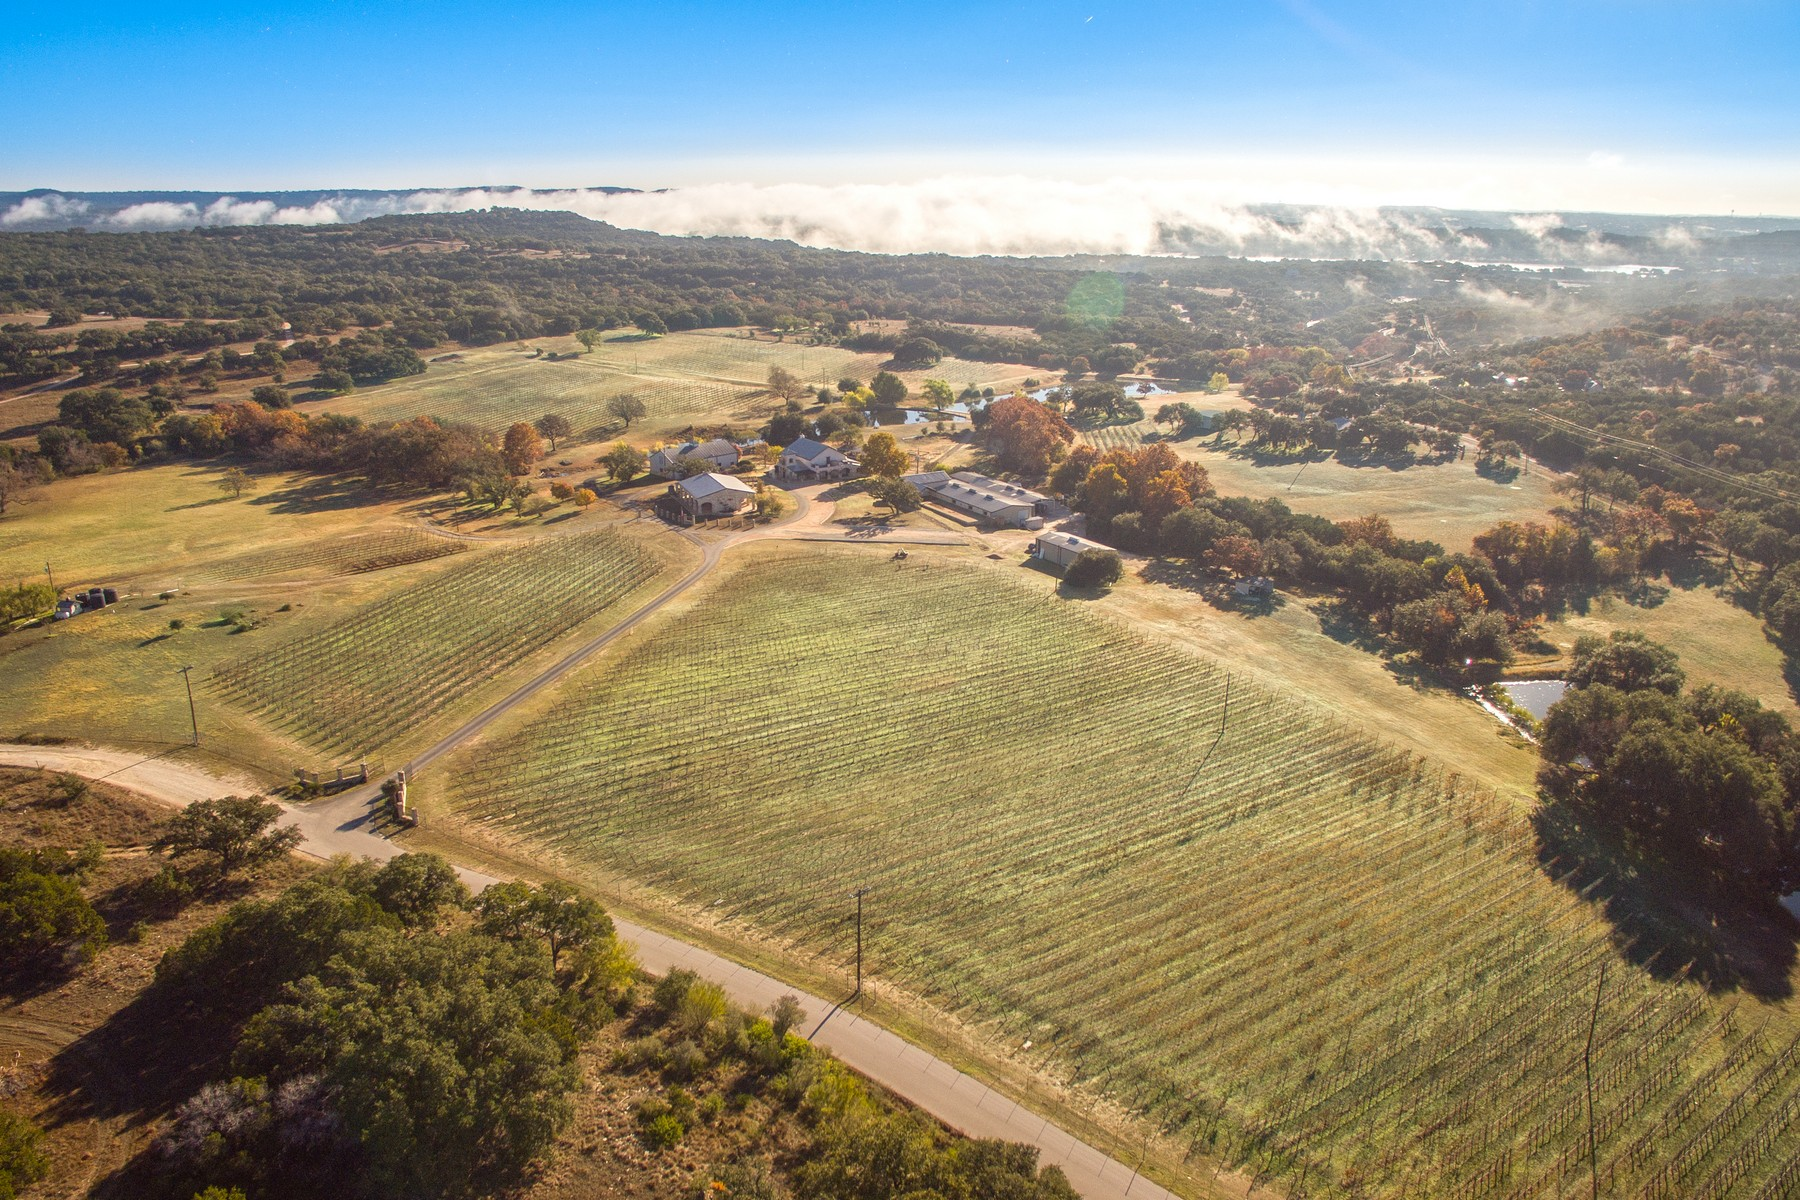 Winery for Sale at The Crown Jewel of Texas Wineries 24912 Singleton Bend East Rd Marble Falls, Texas, 78654 United States